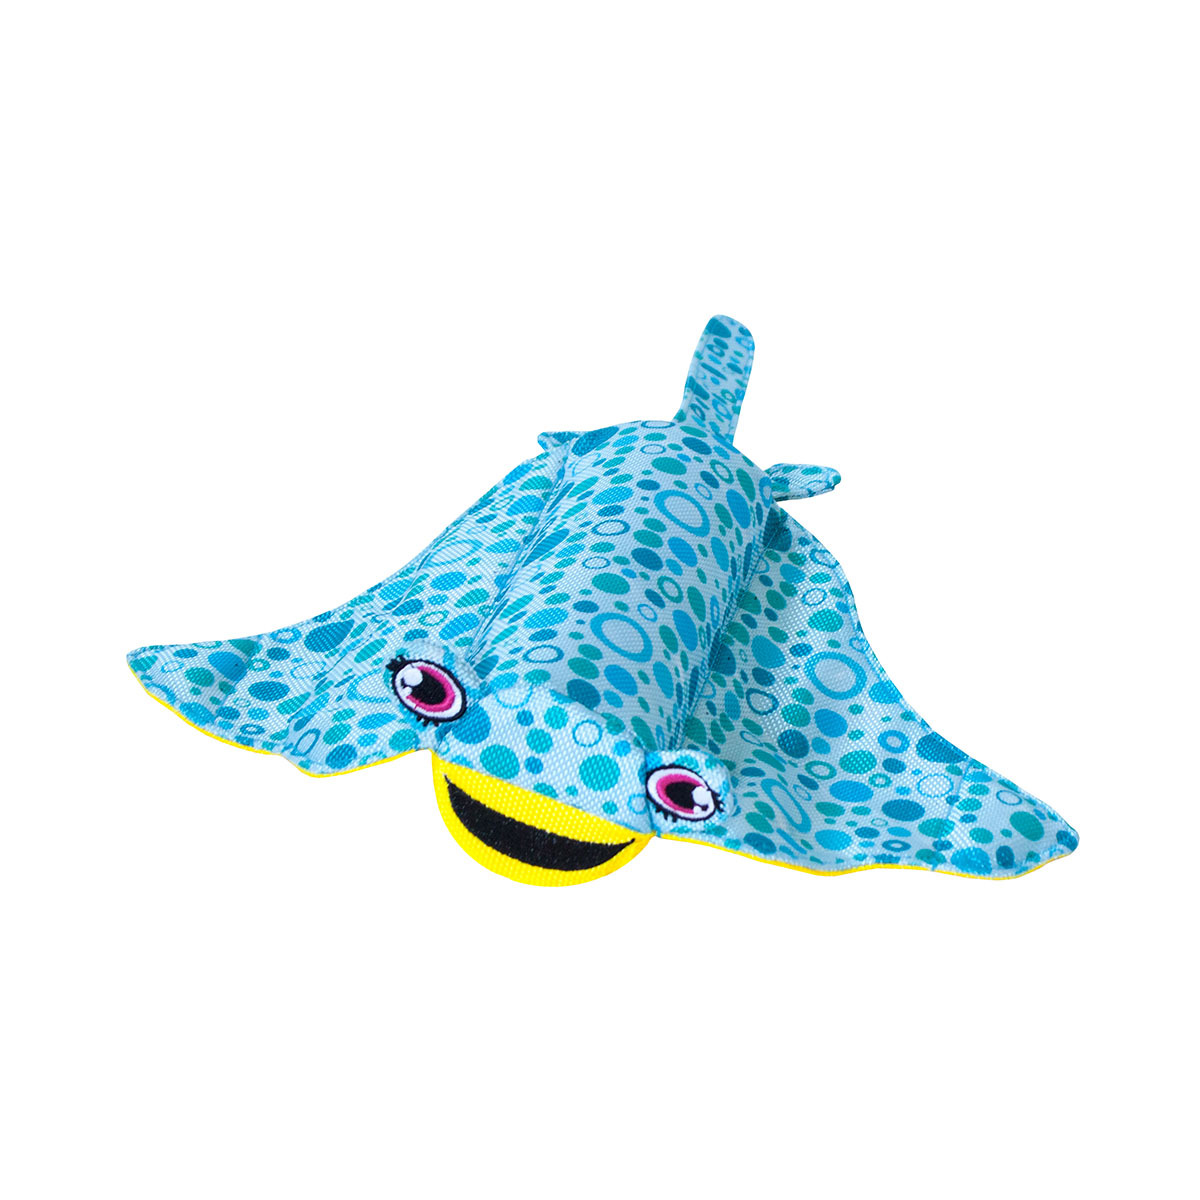 Outward Hound Floatiez Stingray Floating Squeaker Dog Toy image 0